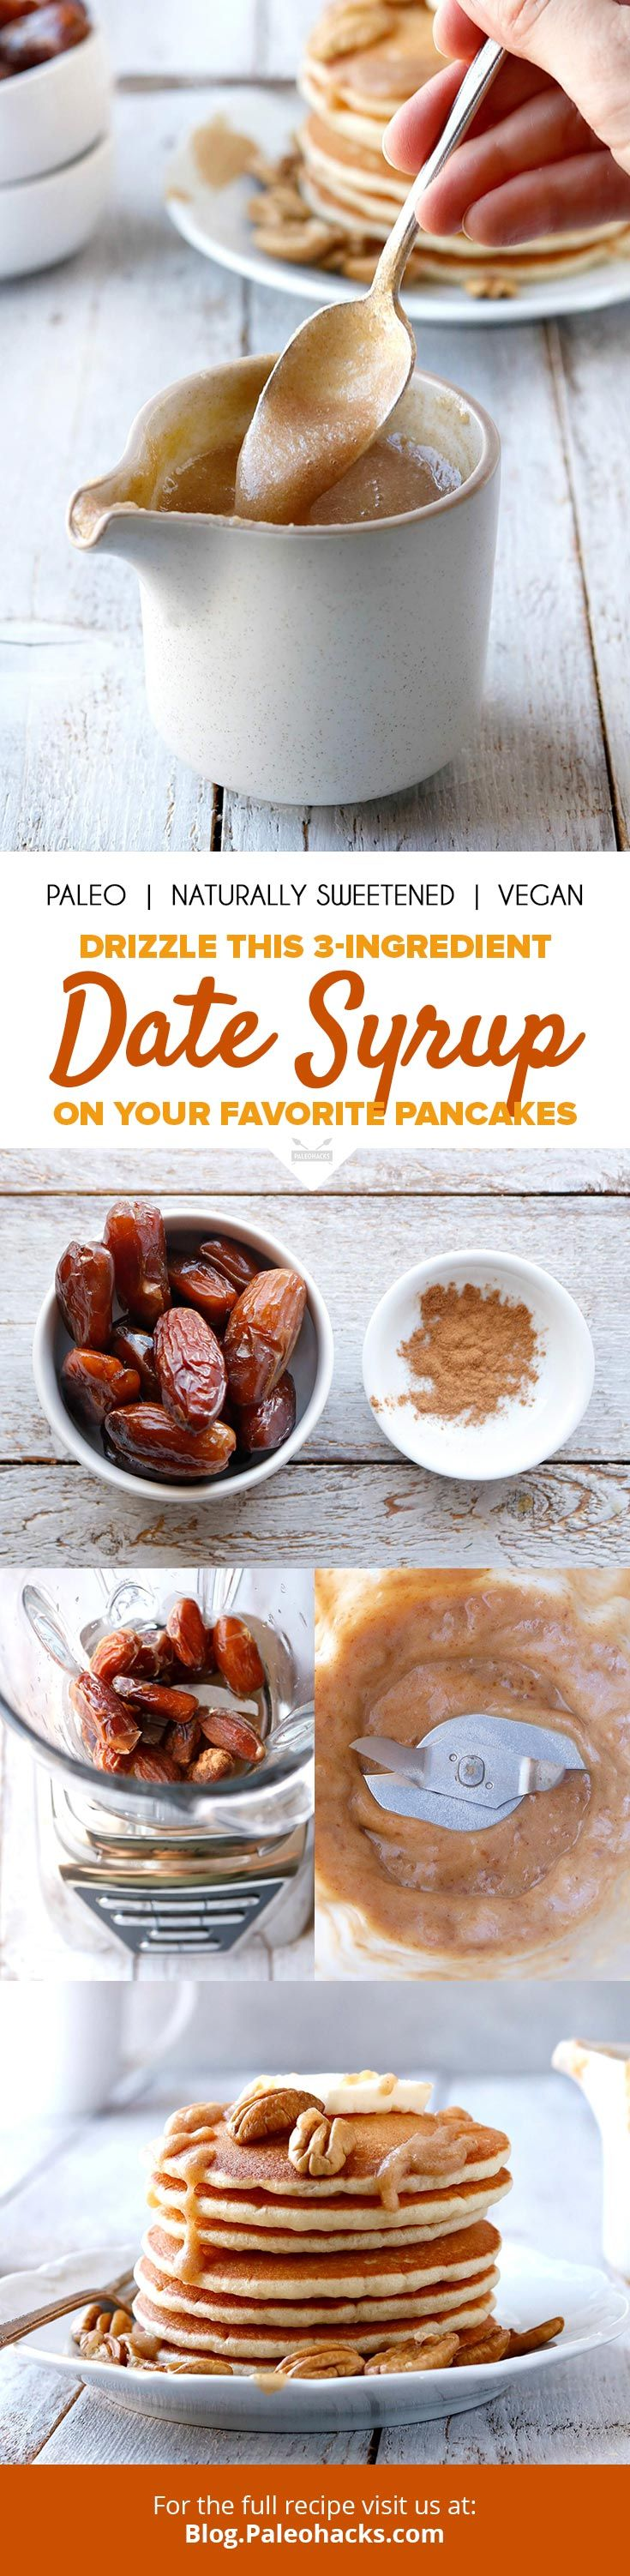 Drizzle your favorite pancakes in this thick, 3-ingredient homemade date syrup! Get the full recipe here: http://paleo.co/datesyrup